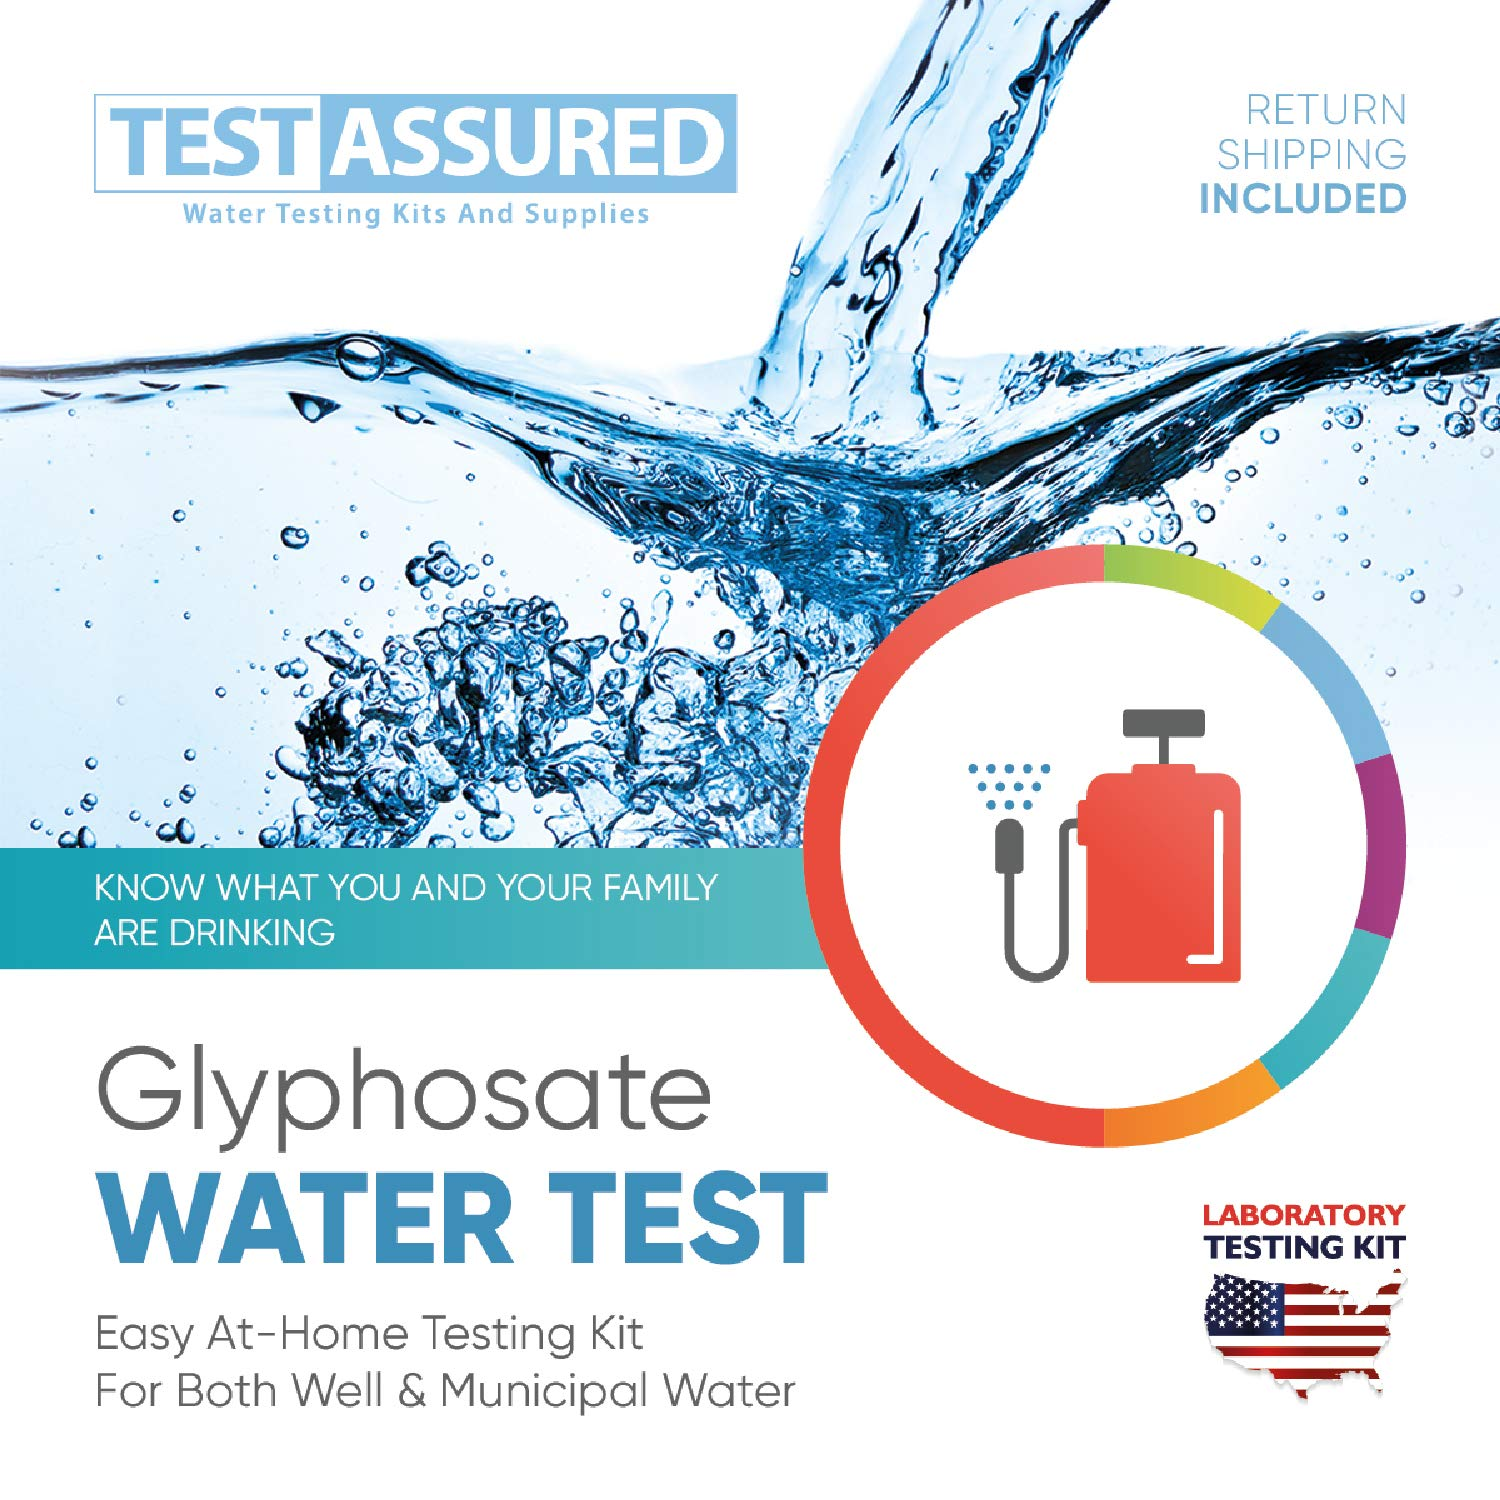 Test Assured Glyphosate Water Test Kit - Easy at-Home Municipal and Well Water Test Kit - Mailed-in Laboratory Glyphosate Testing Kit by Test Assured